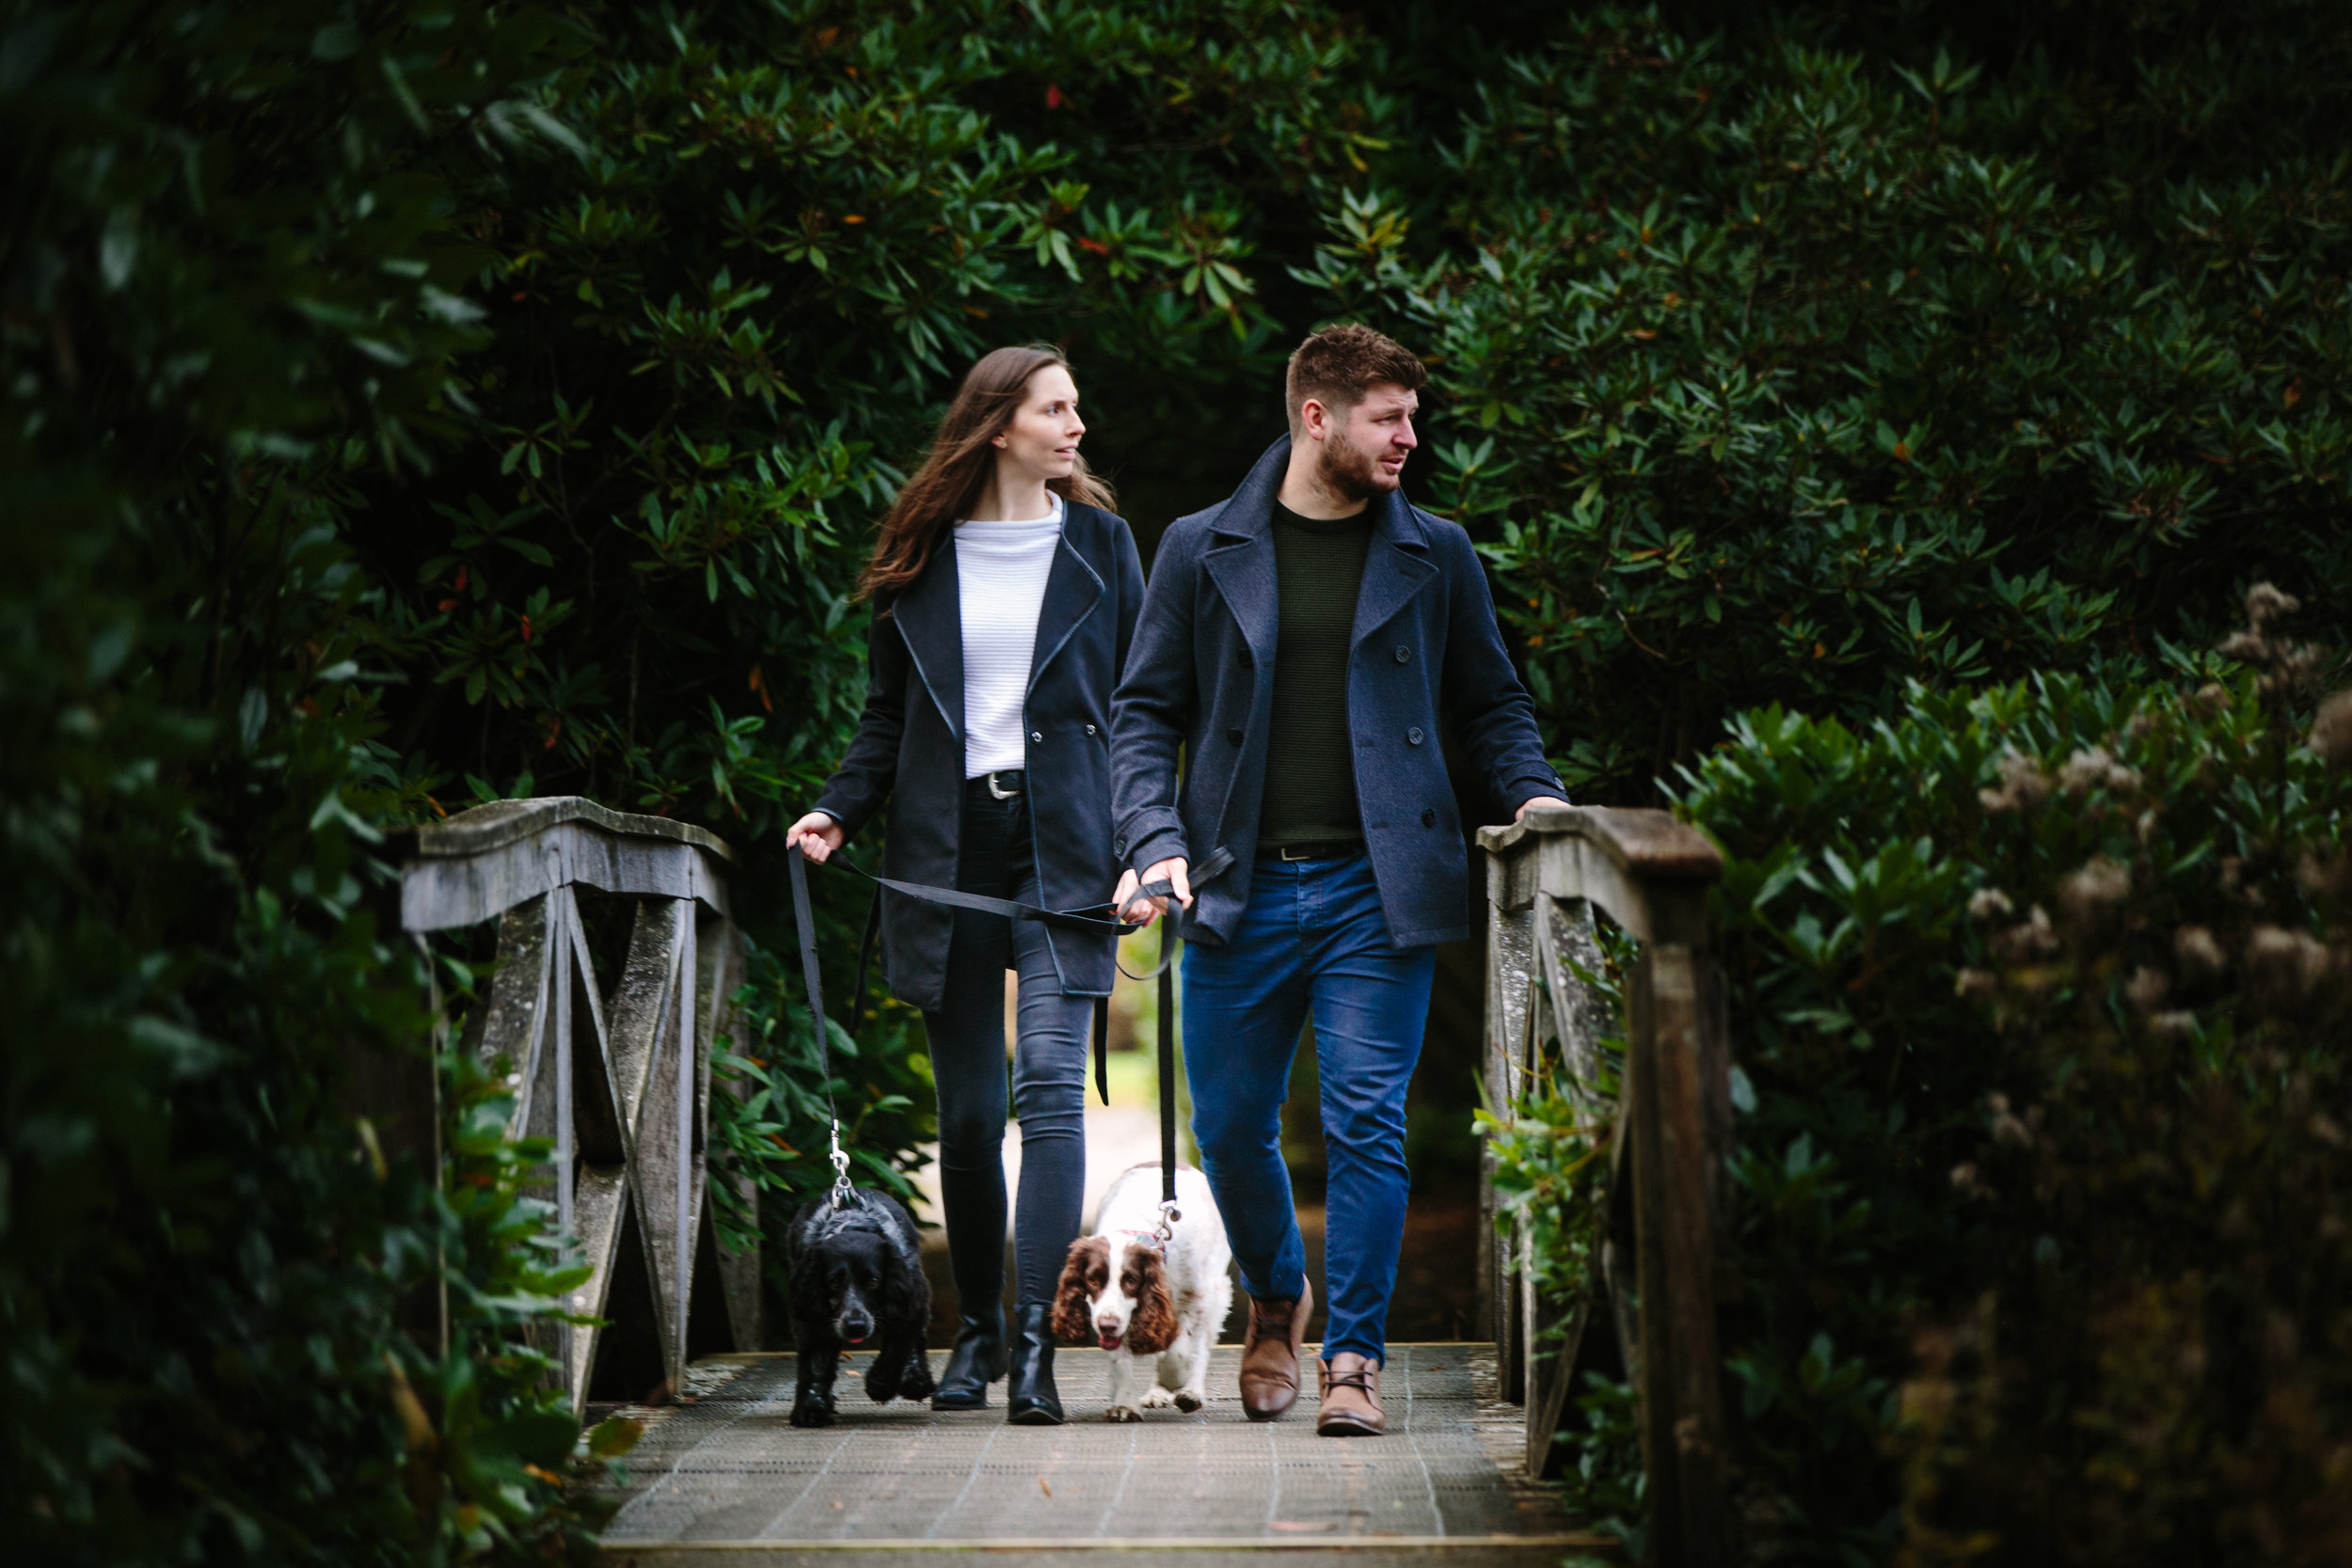 Scotney-Castle-Kent-London-Wedding-Photography-dogs-12